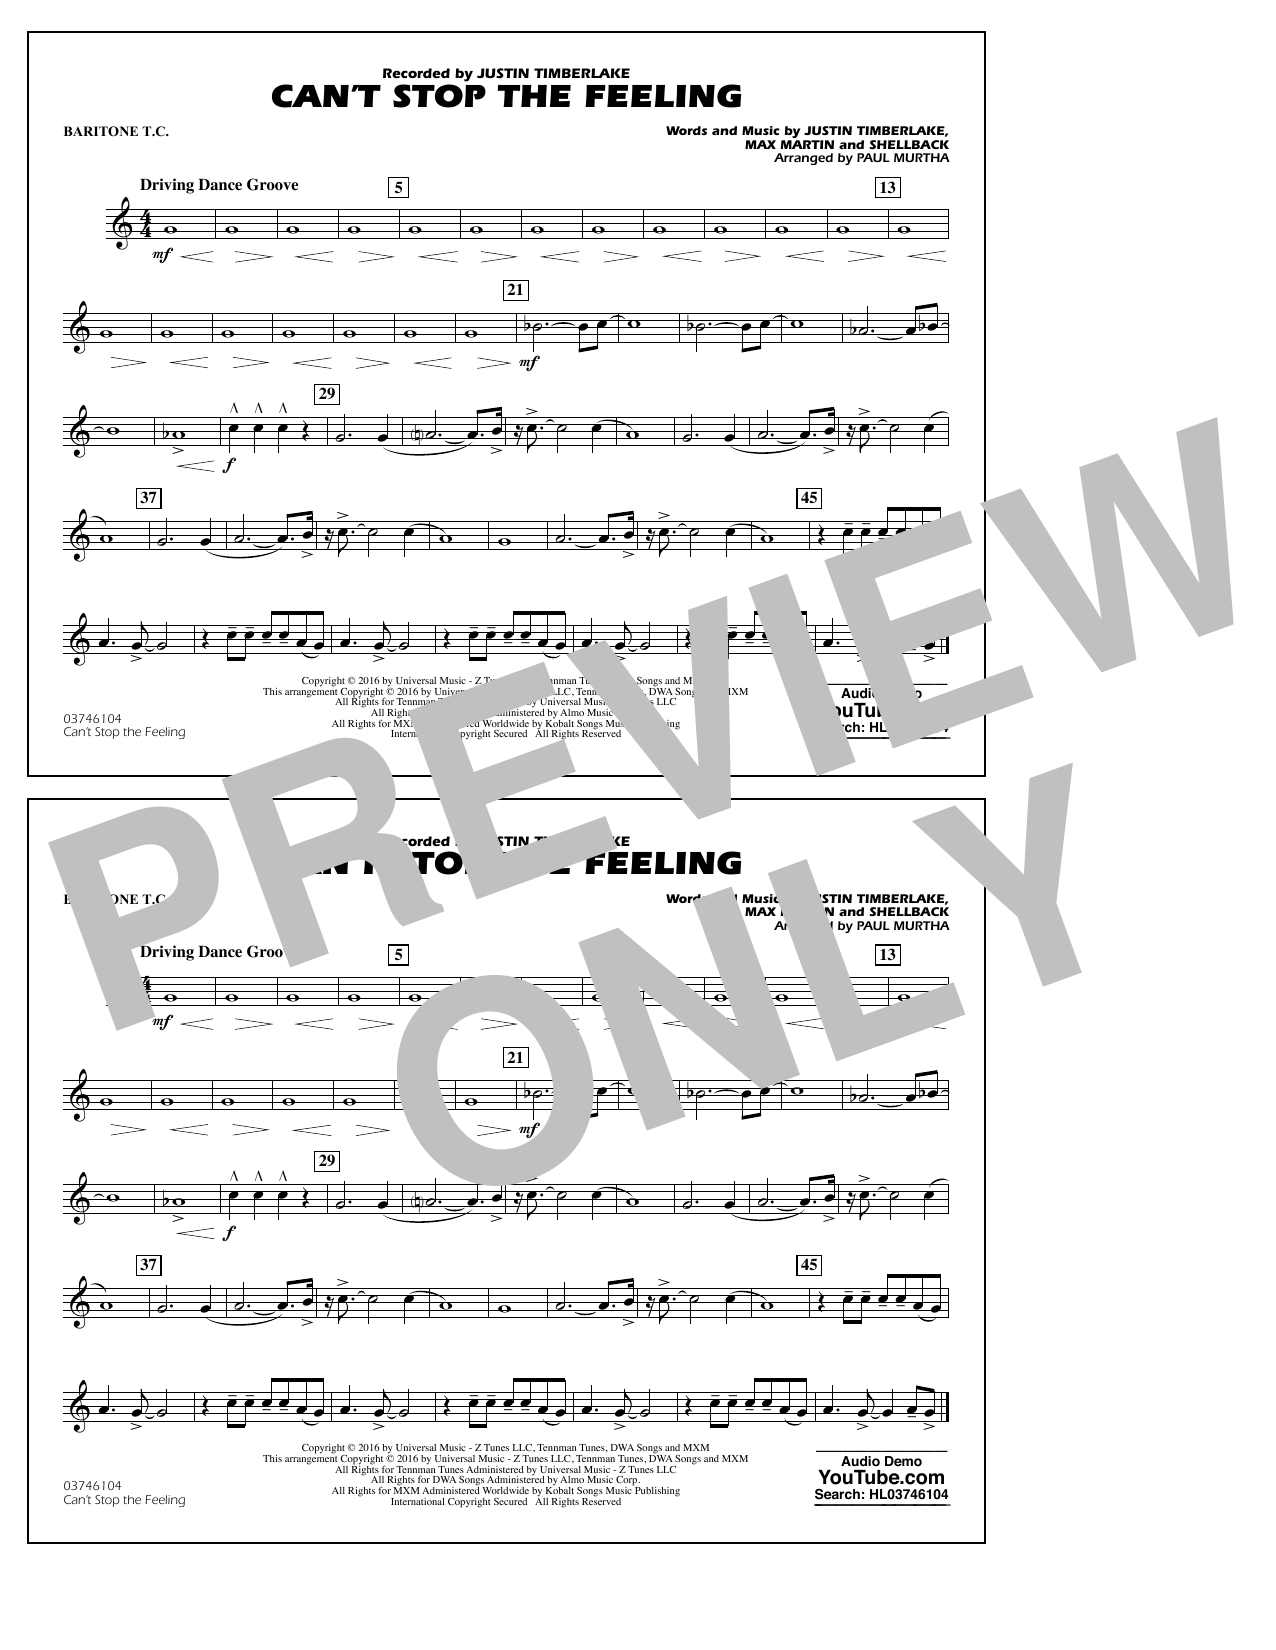 Can't Stop the Feeling (from Trolls) - Baritone T.C. Sheet Music